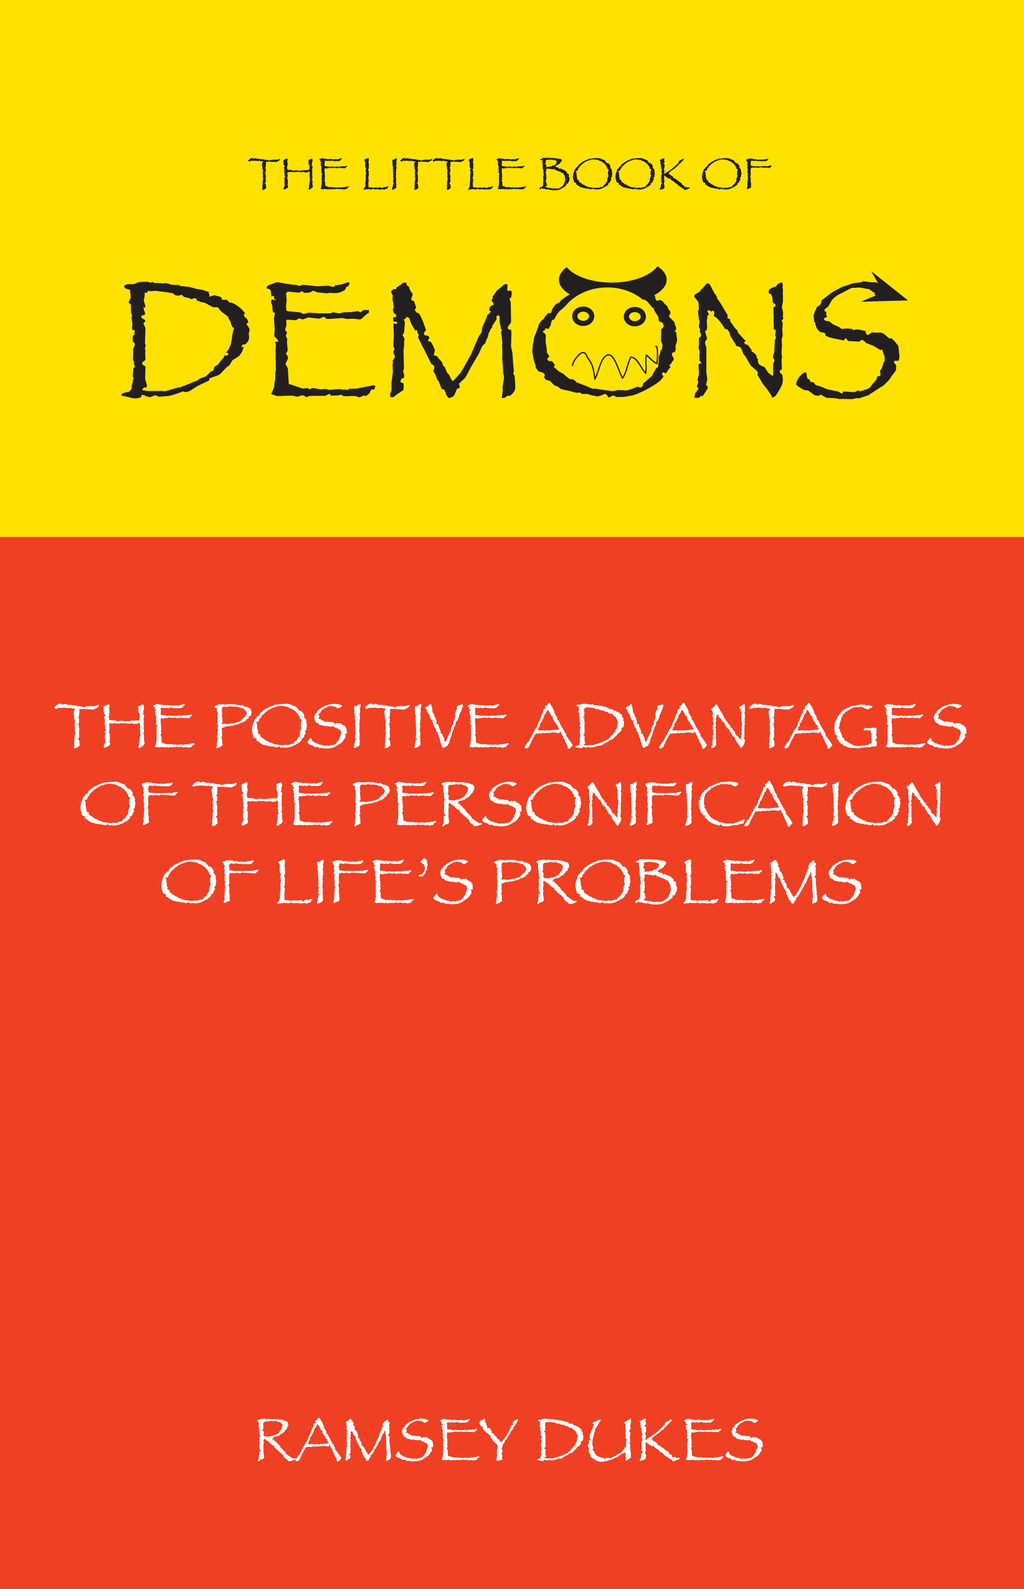 The Little Book of Demons: The Positive Advantages of the Personification of Life's Problems